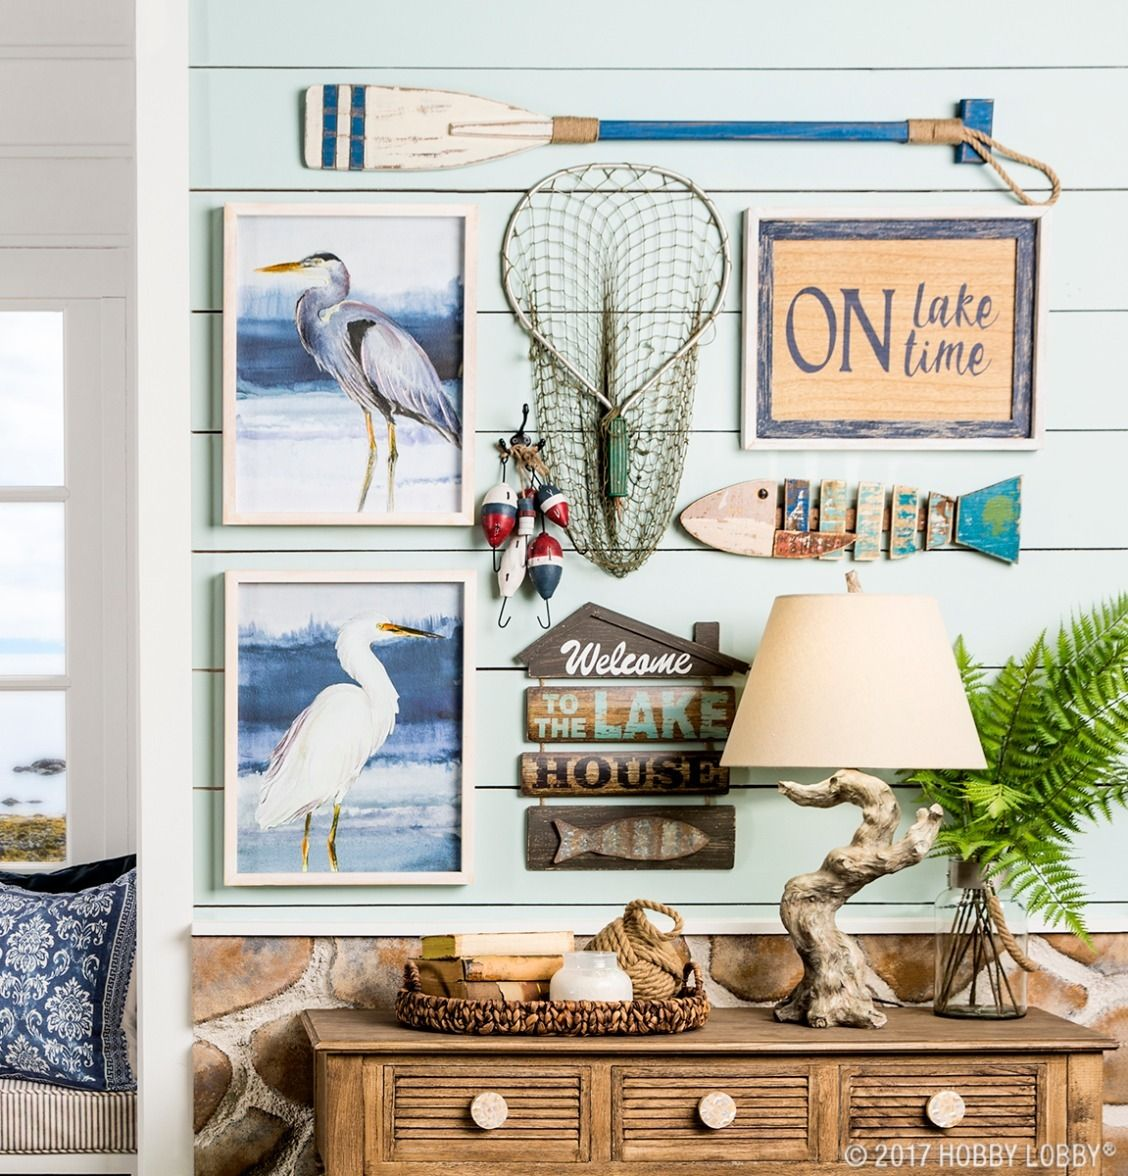 Channel summertime vibes with lake-themed decor!  River house